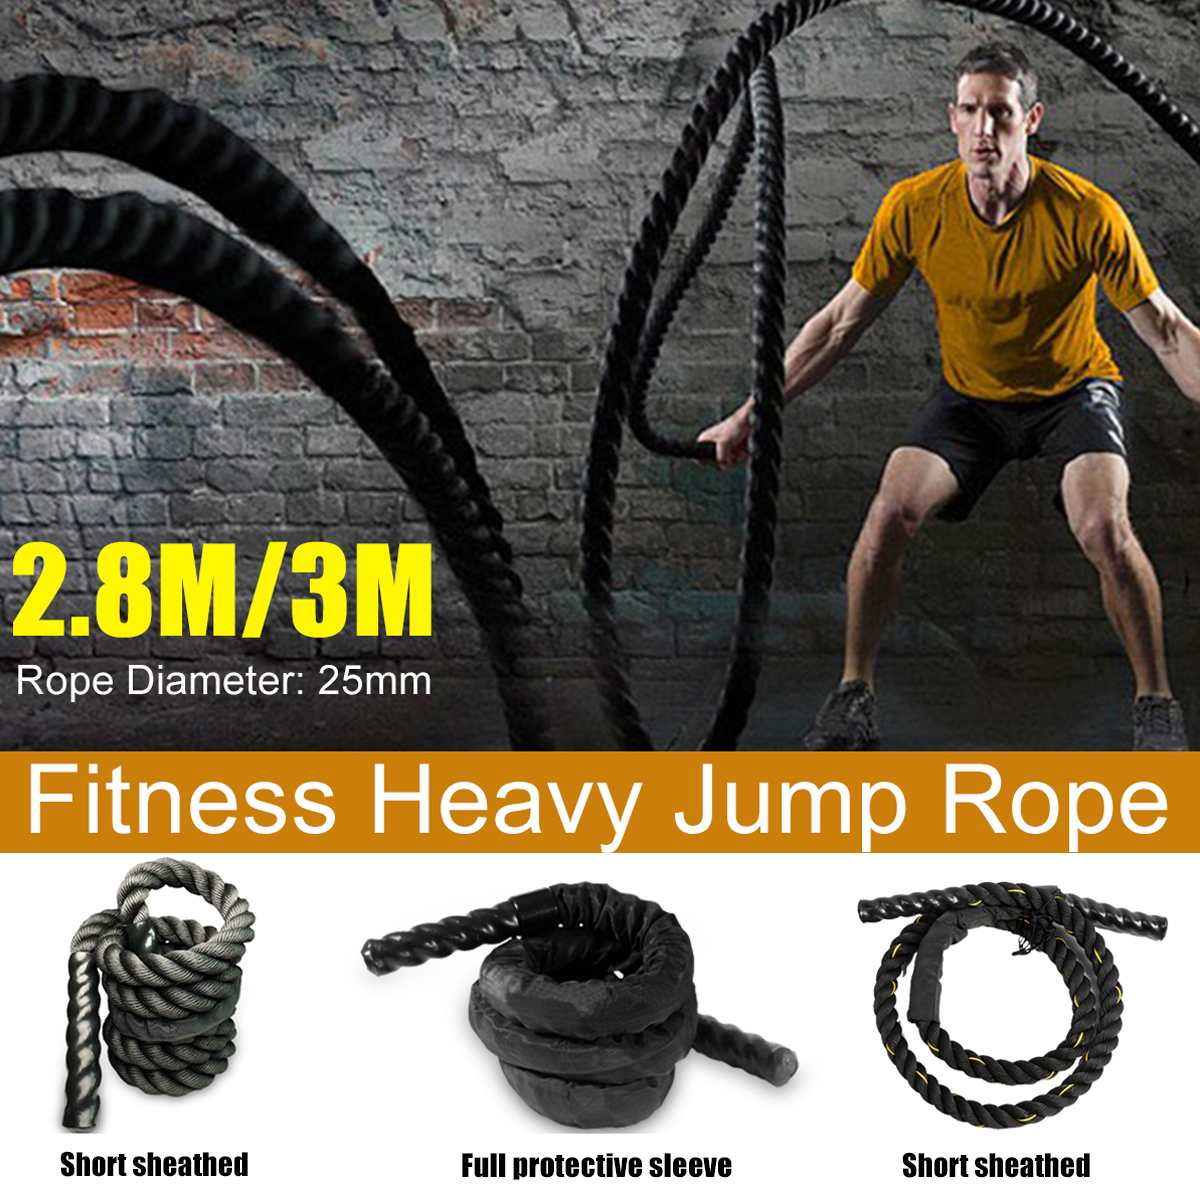 Heavy Jump Rope Skipping Rope Workout Battle Ropes for Men Women Total Body